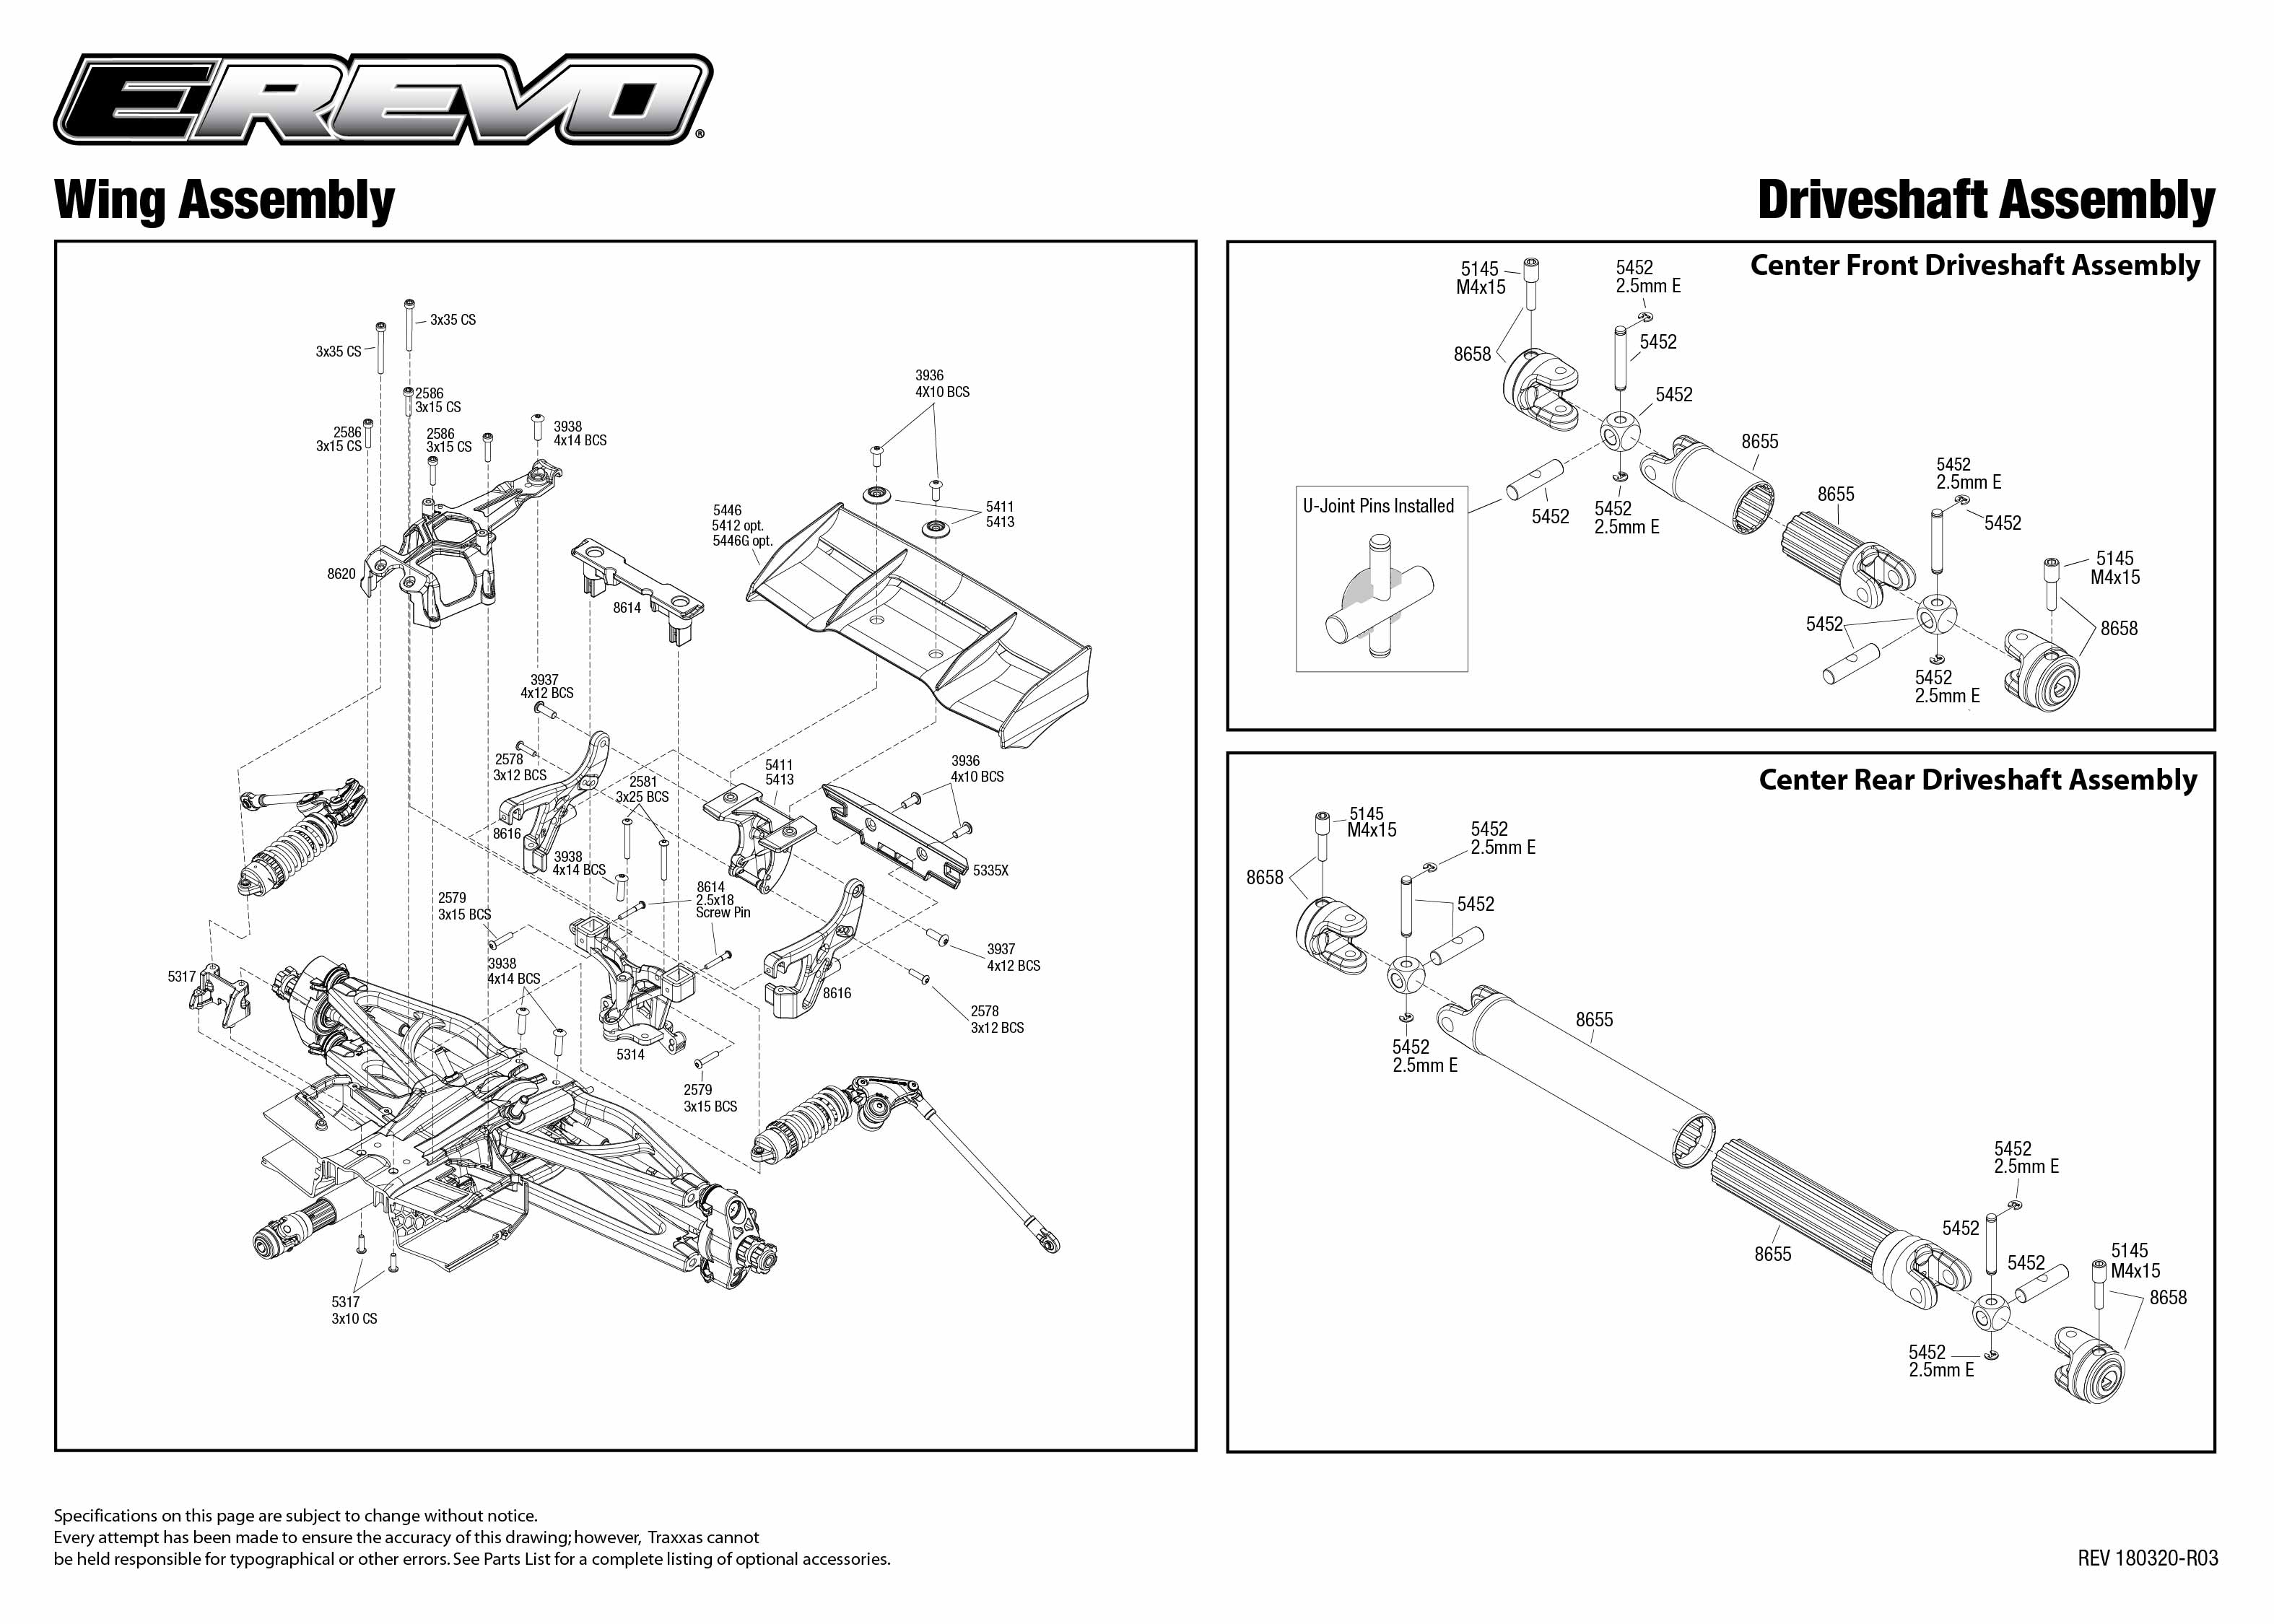 E Revo 2 Vxl Brushless 1 10 Scale 4wd Etheridge Race Parts Rustler Traxxas Brushed Quick Start Manual Exploded View Driveshafts Assembly